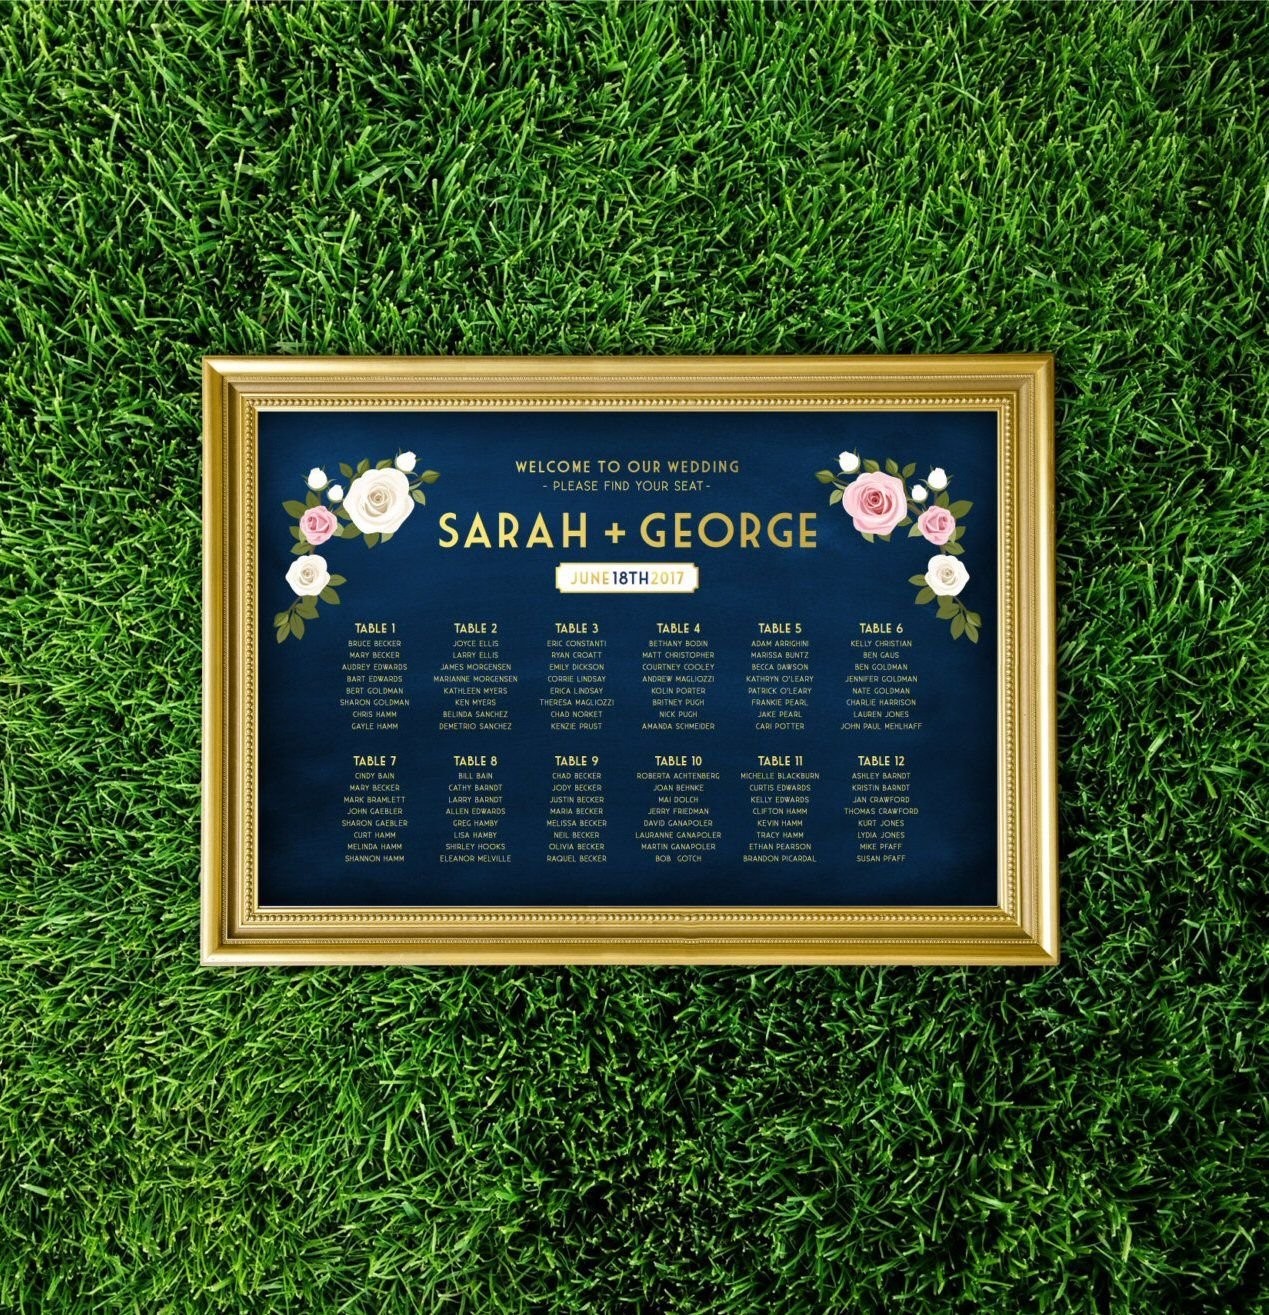 Simple way to seat guests using a print, seating chart, and shimmery gold frame.